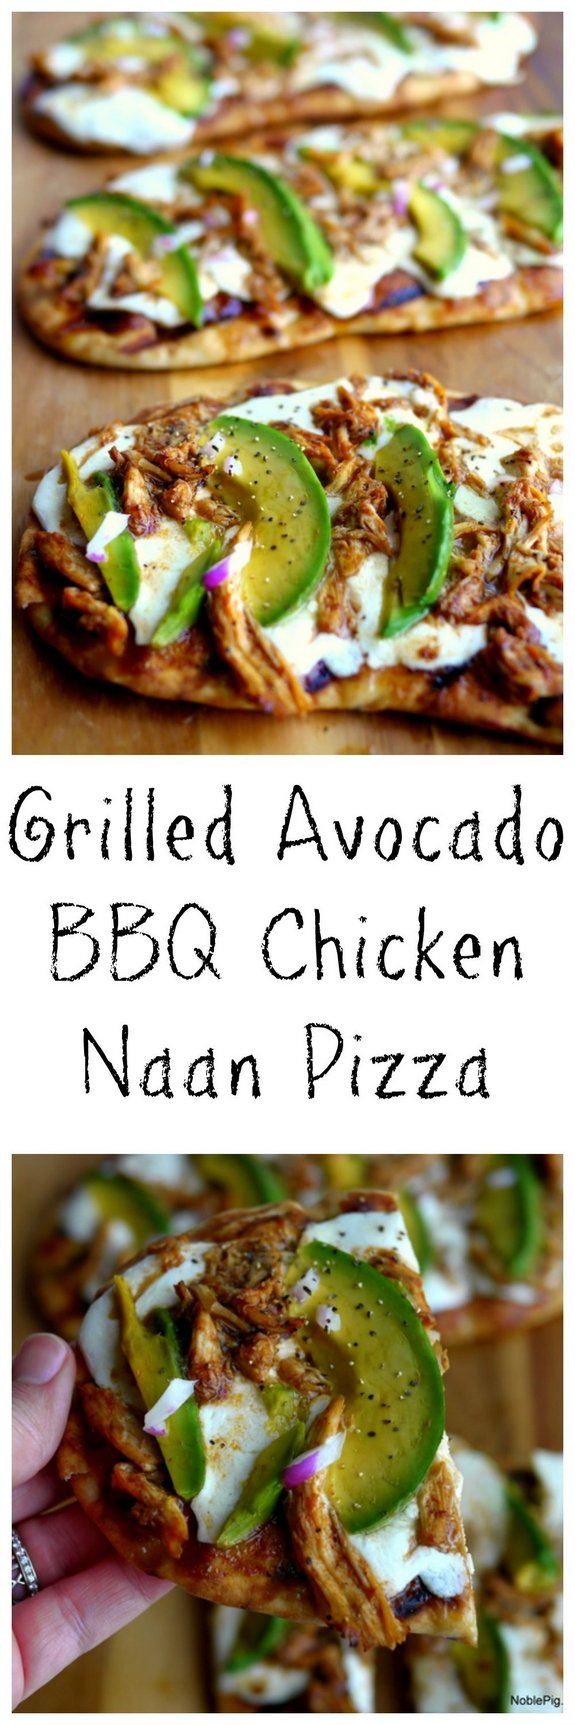 Grilled Avocado Barbecue Chicken Naan Pizza the perfect meal anytime